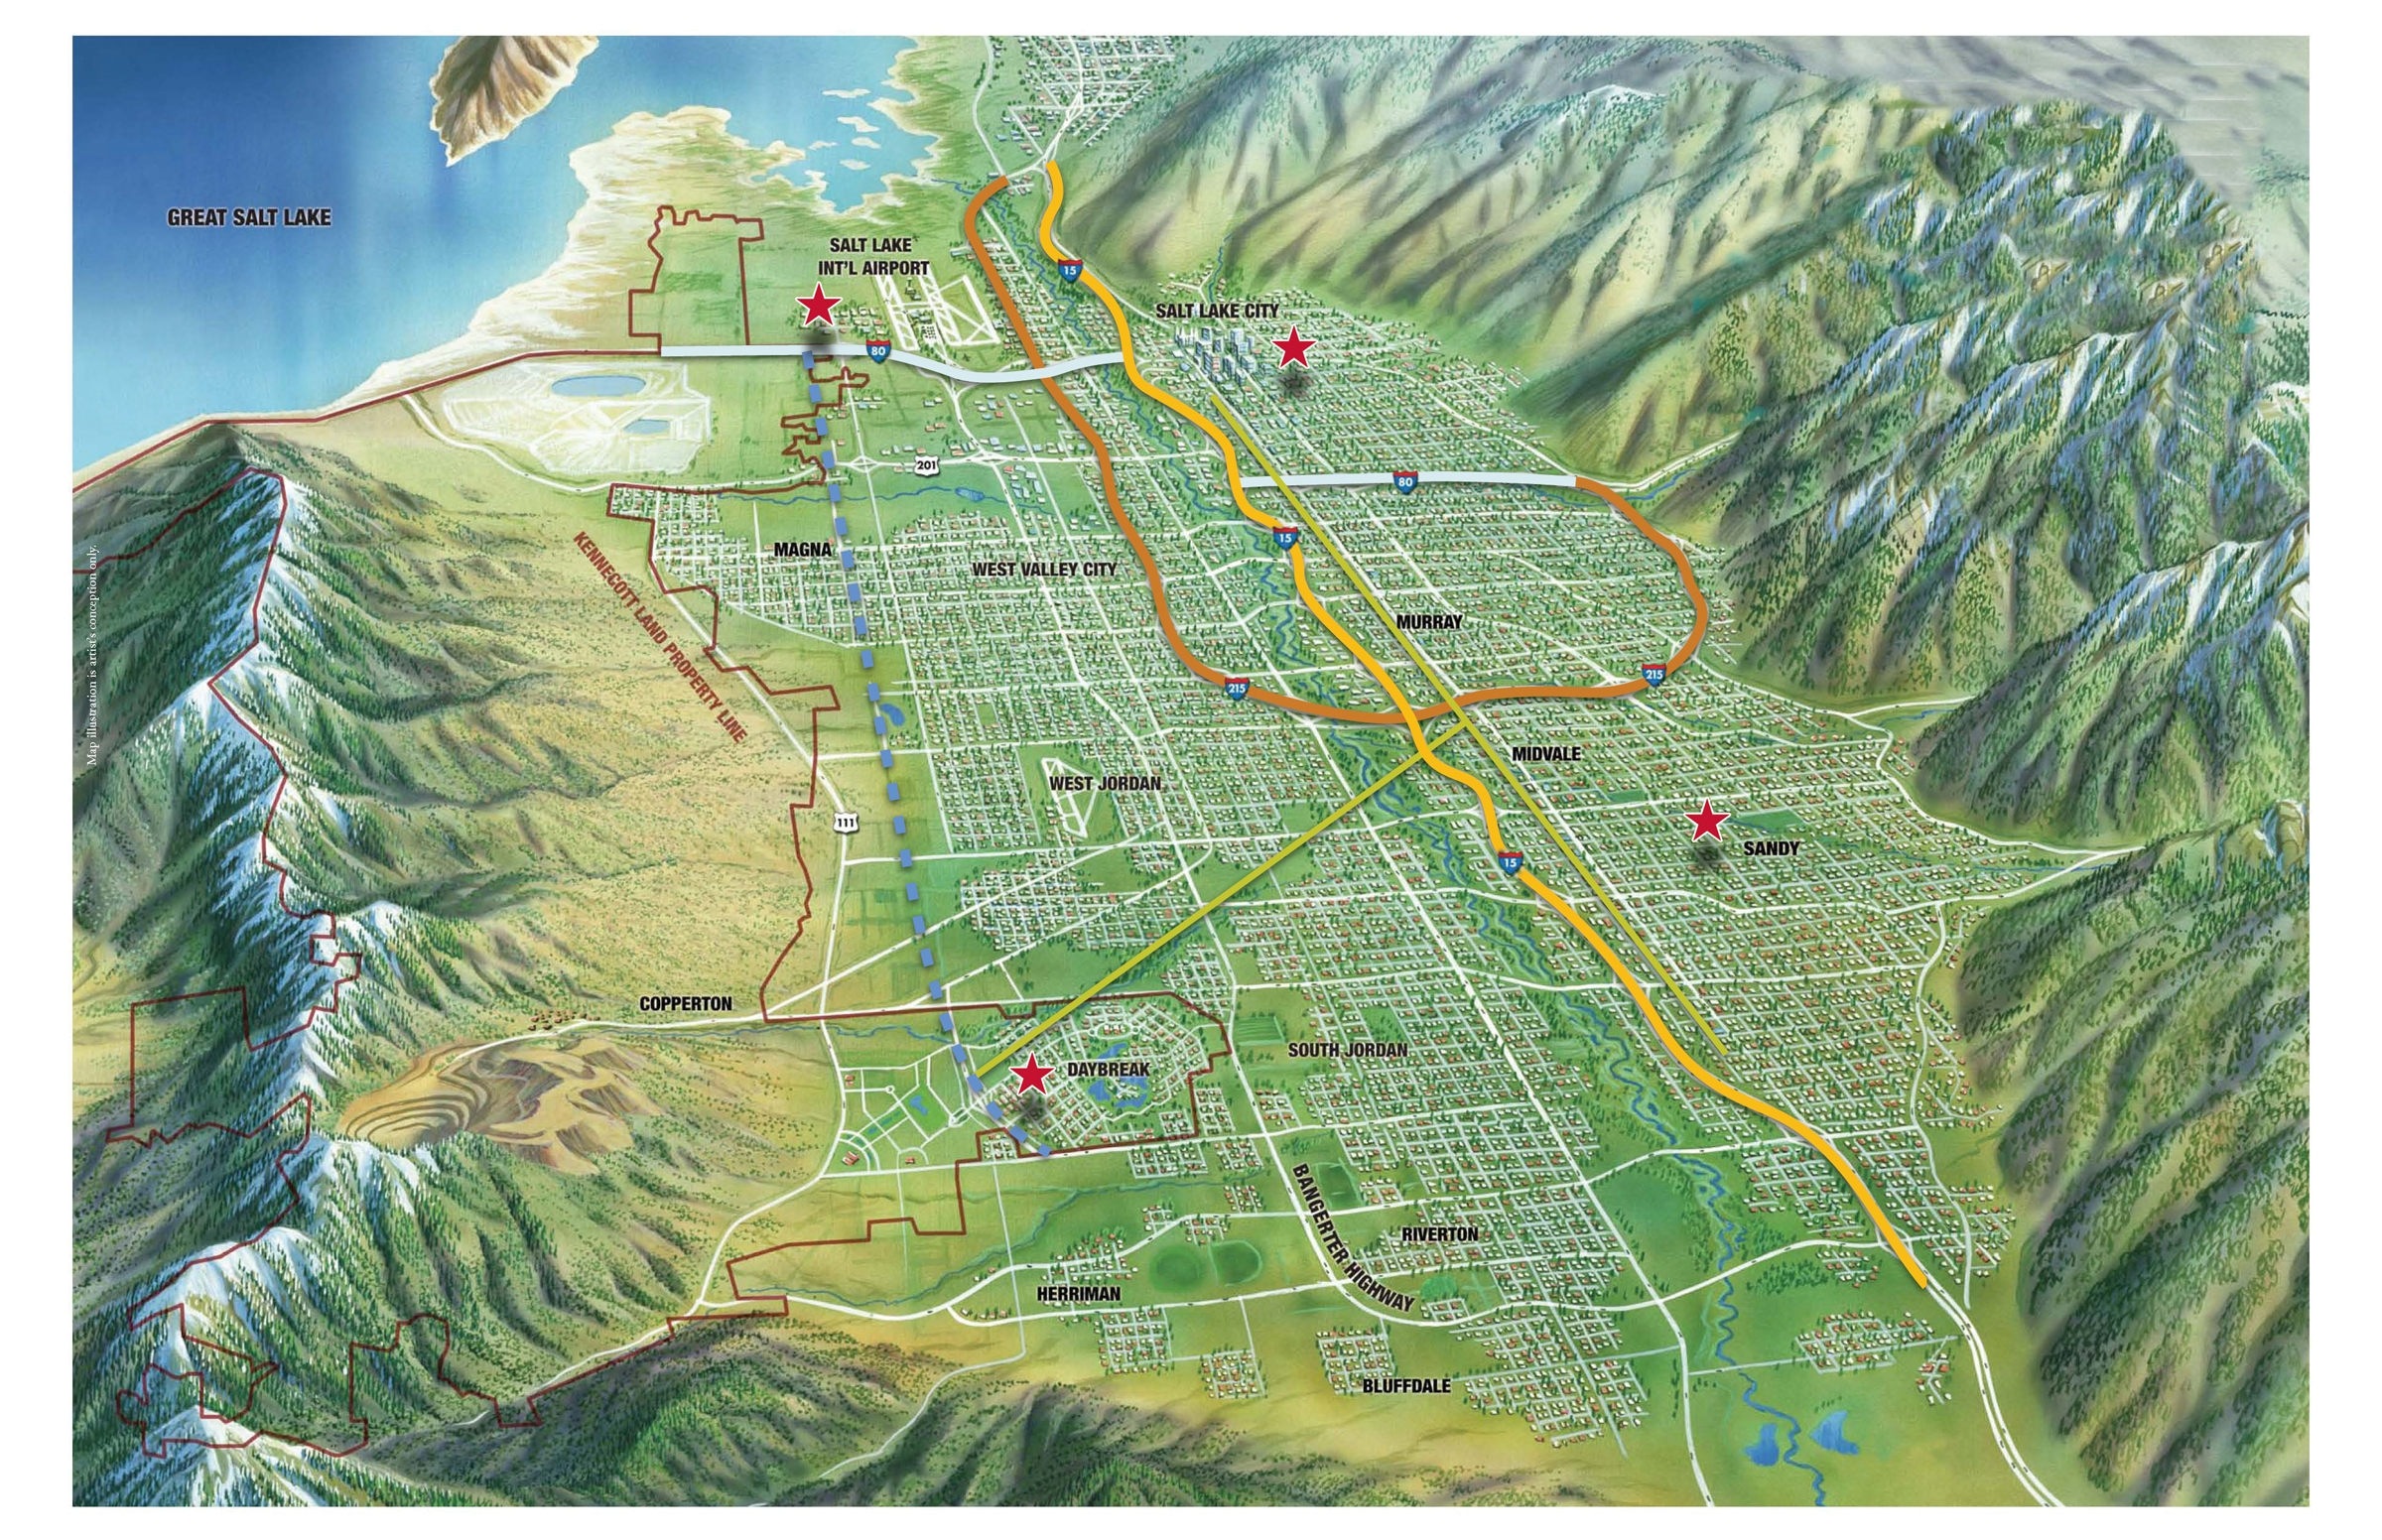 salt lake city public transportation map with Railway Stations In Salt Lake County  Utah on Live likewise munich Touristinfo also Railway stations in salt lake county  utah moreover Little America Hotel moreover Qinghai Lake.